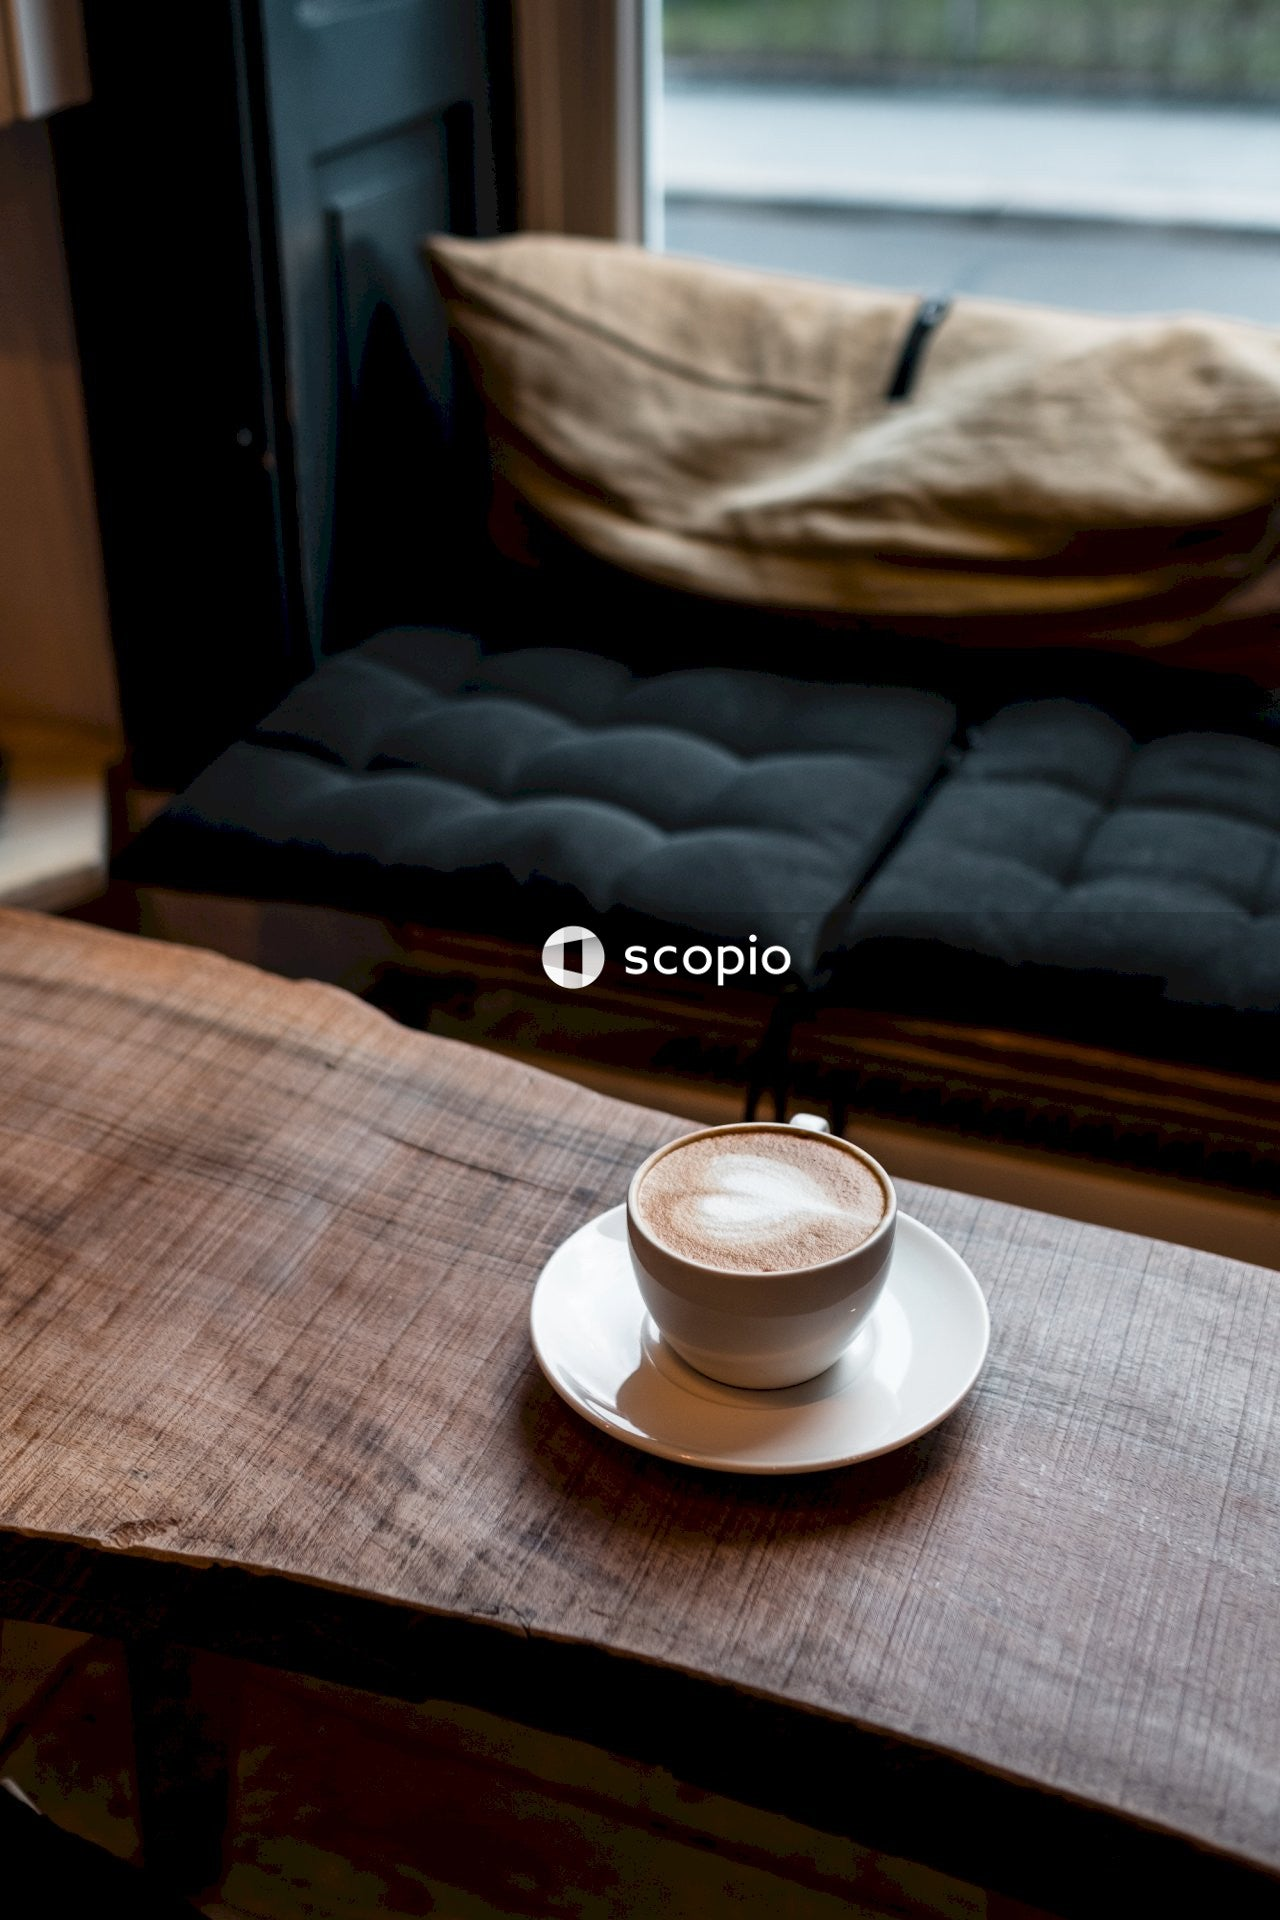 White ceramic cup on white ceramic saucer on brown wooden table